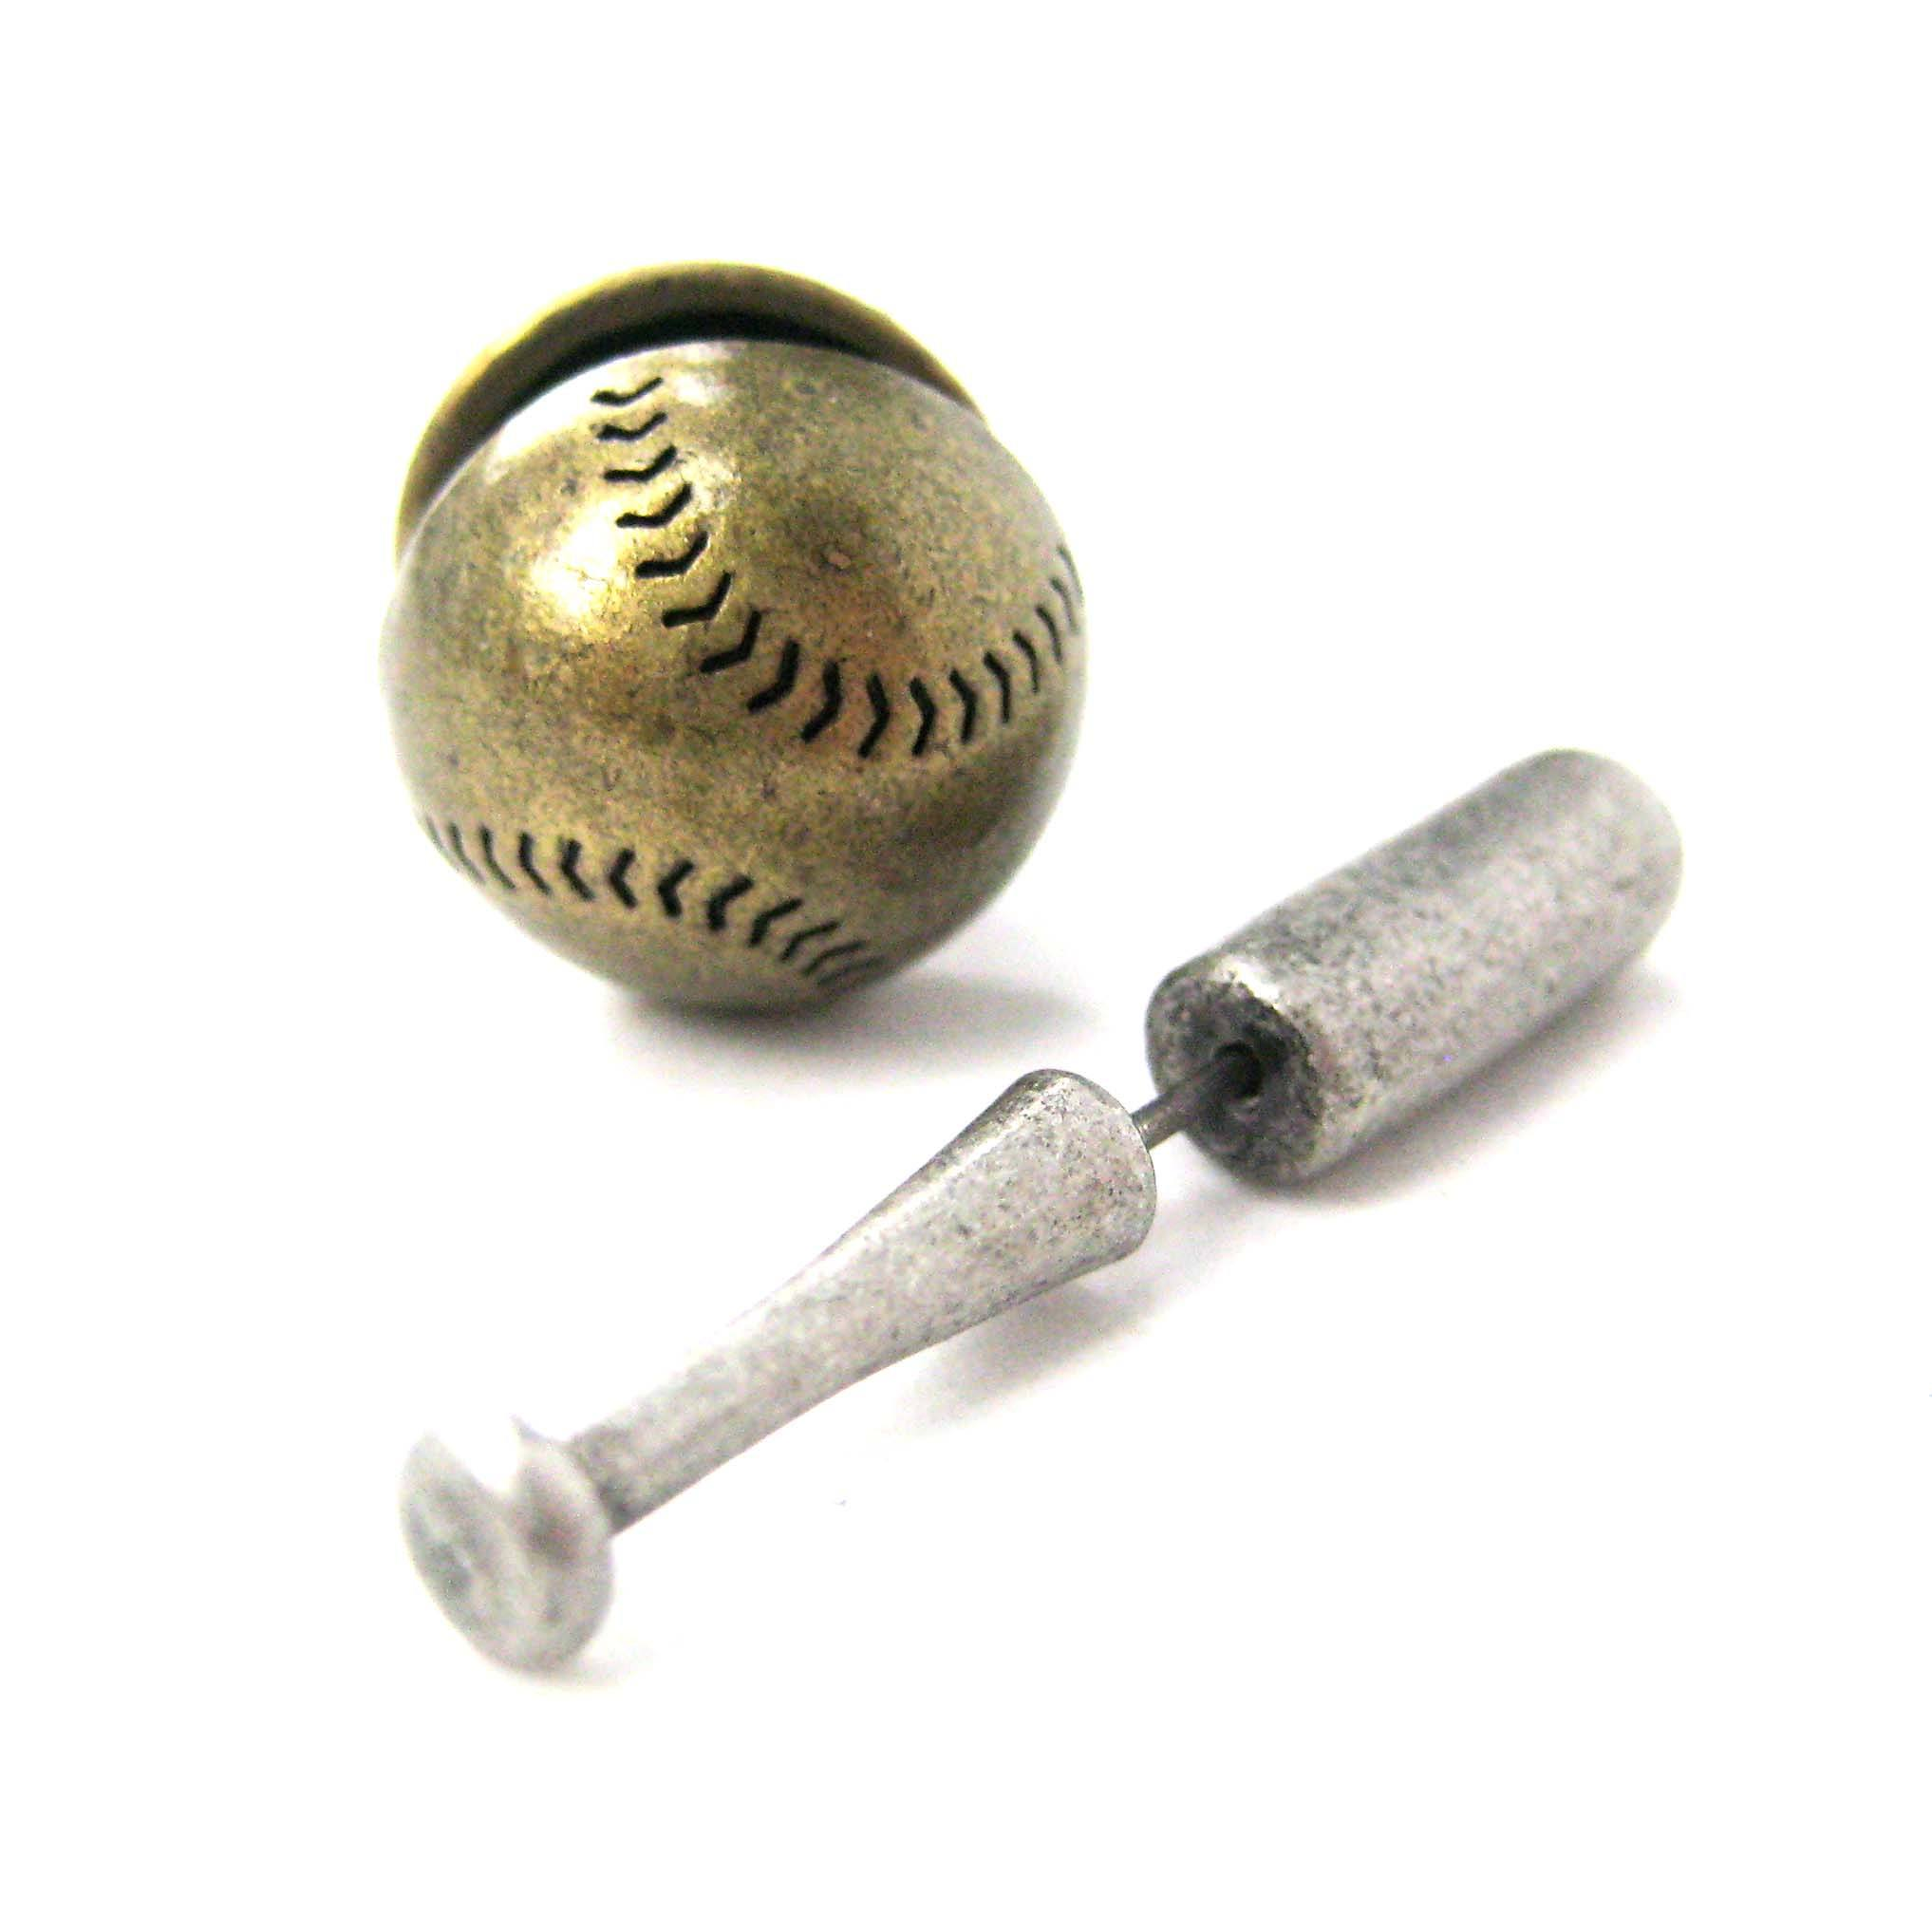 fake-gauge-earrings-baseball-bat-and-ball-shaped-faux-plug-stud-earrings